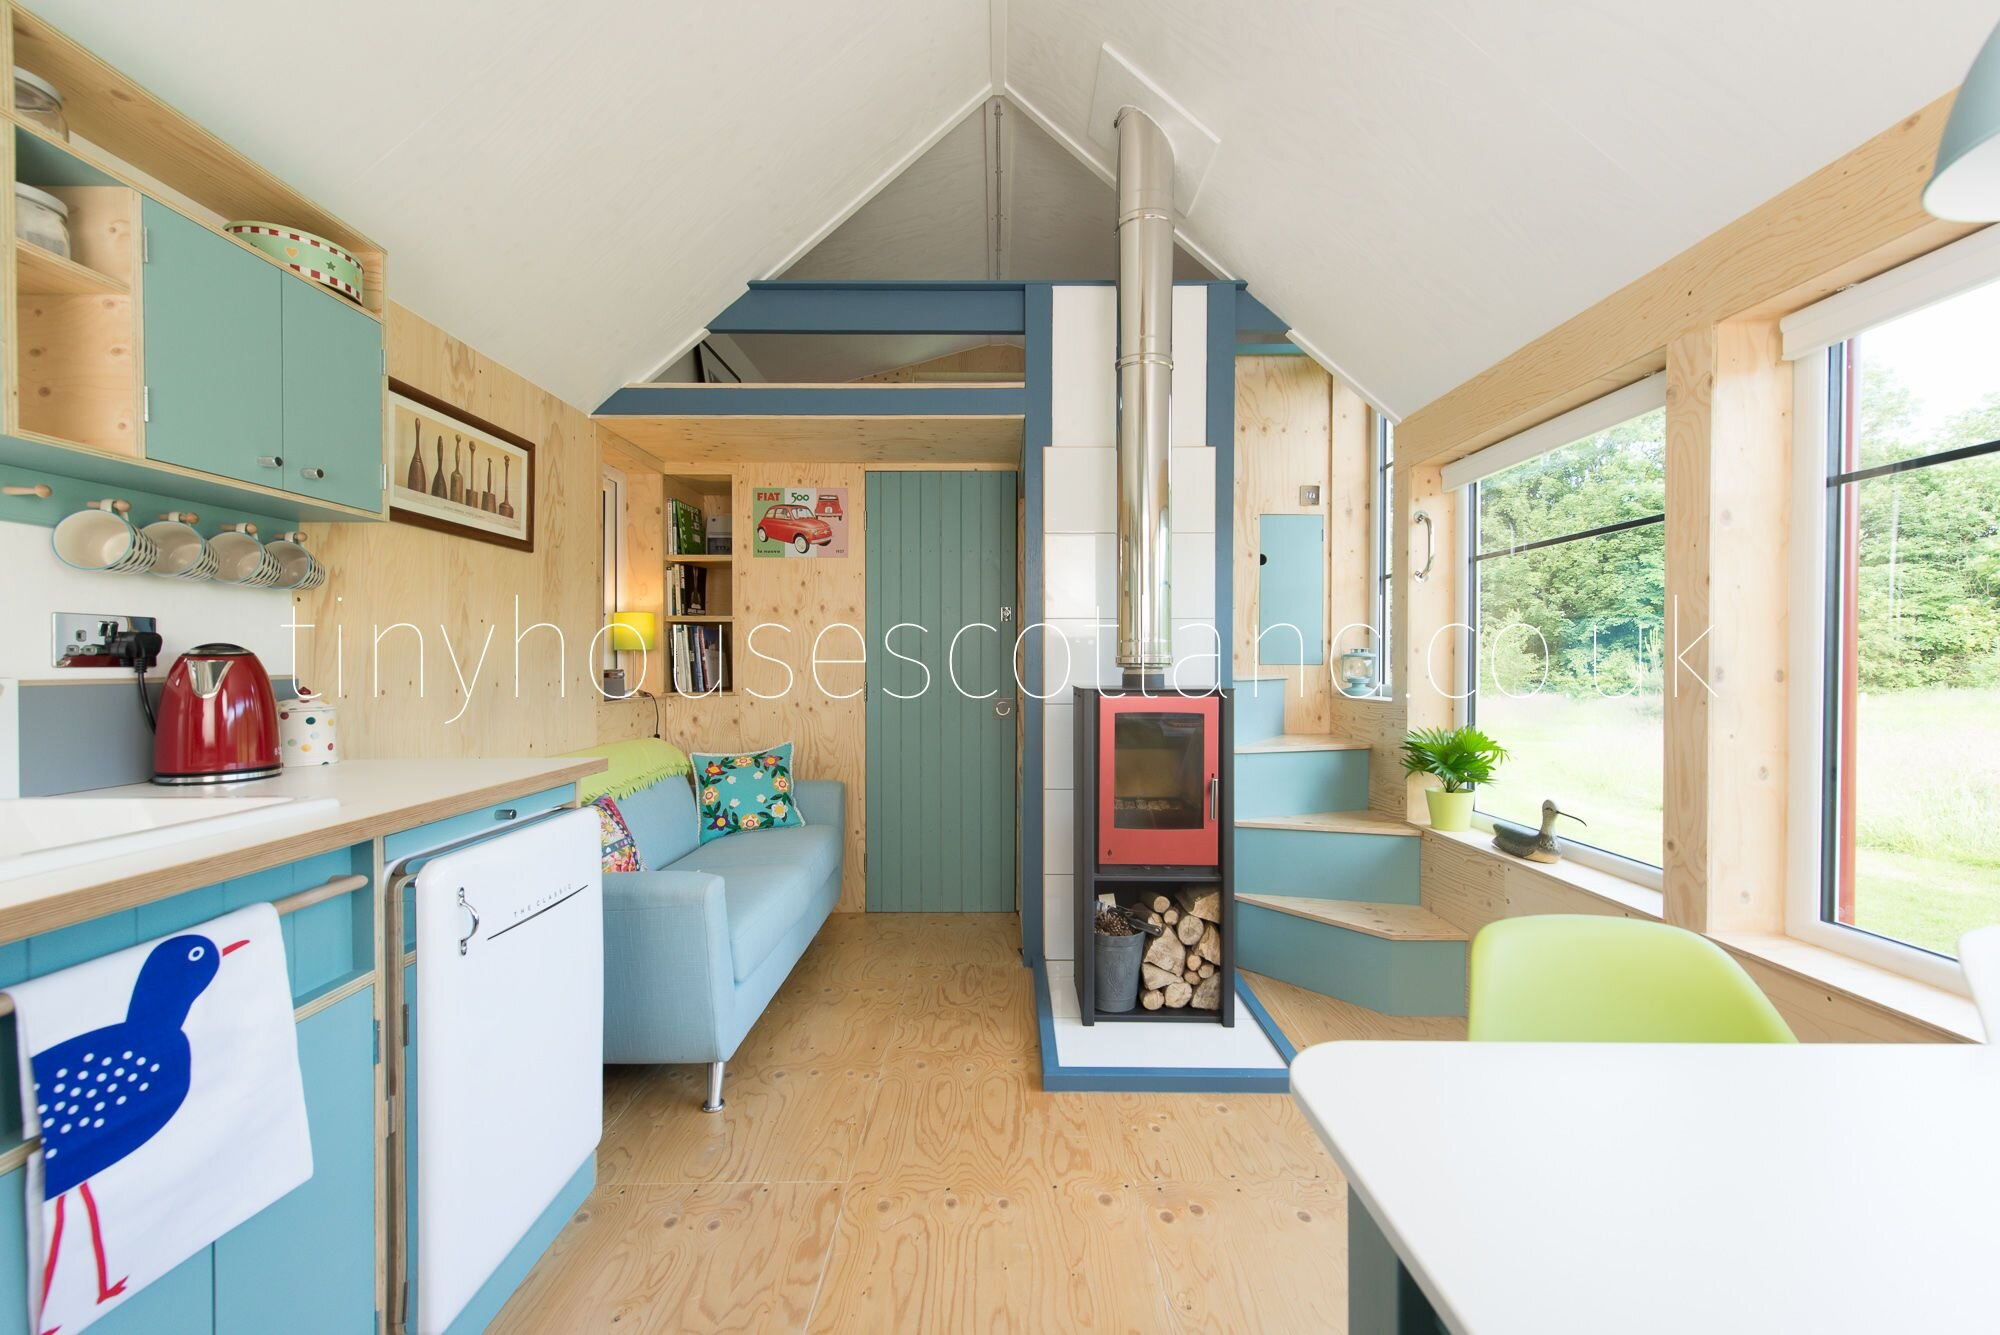 nest-house-tiny-house-scotland-scotland-ineterior-1-humble-homes